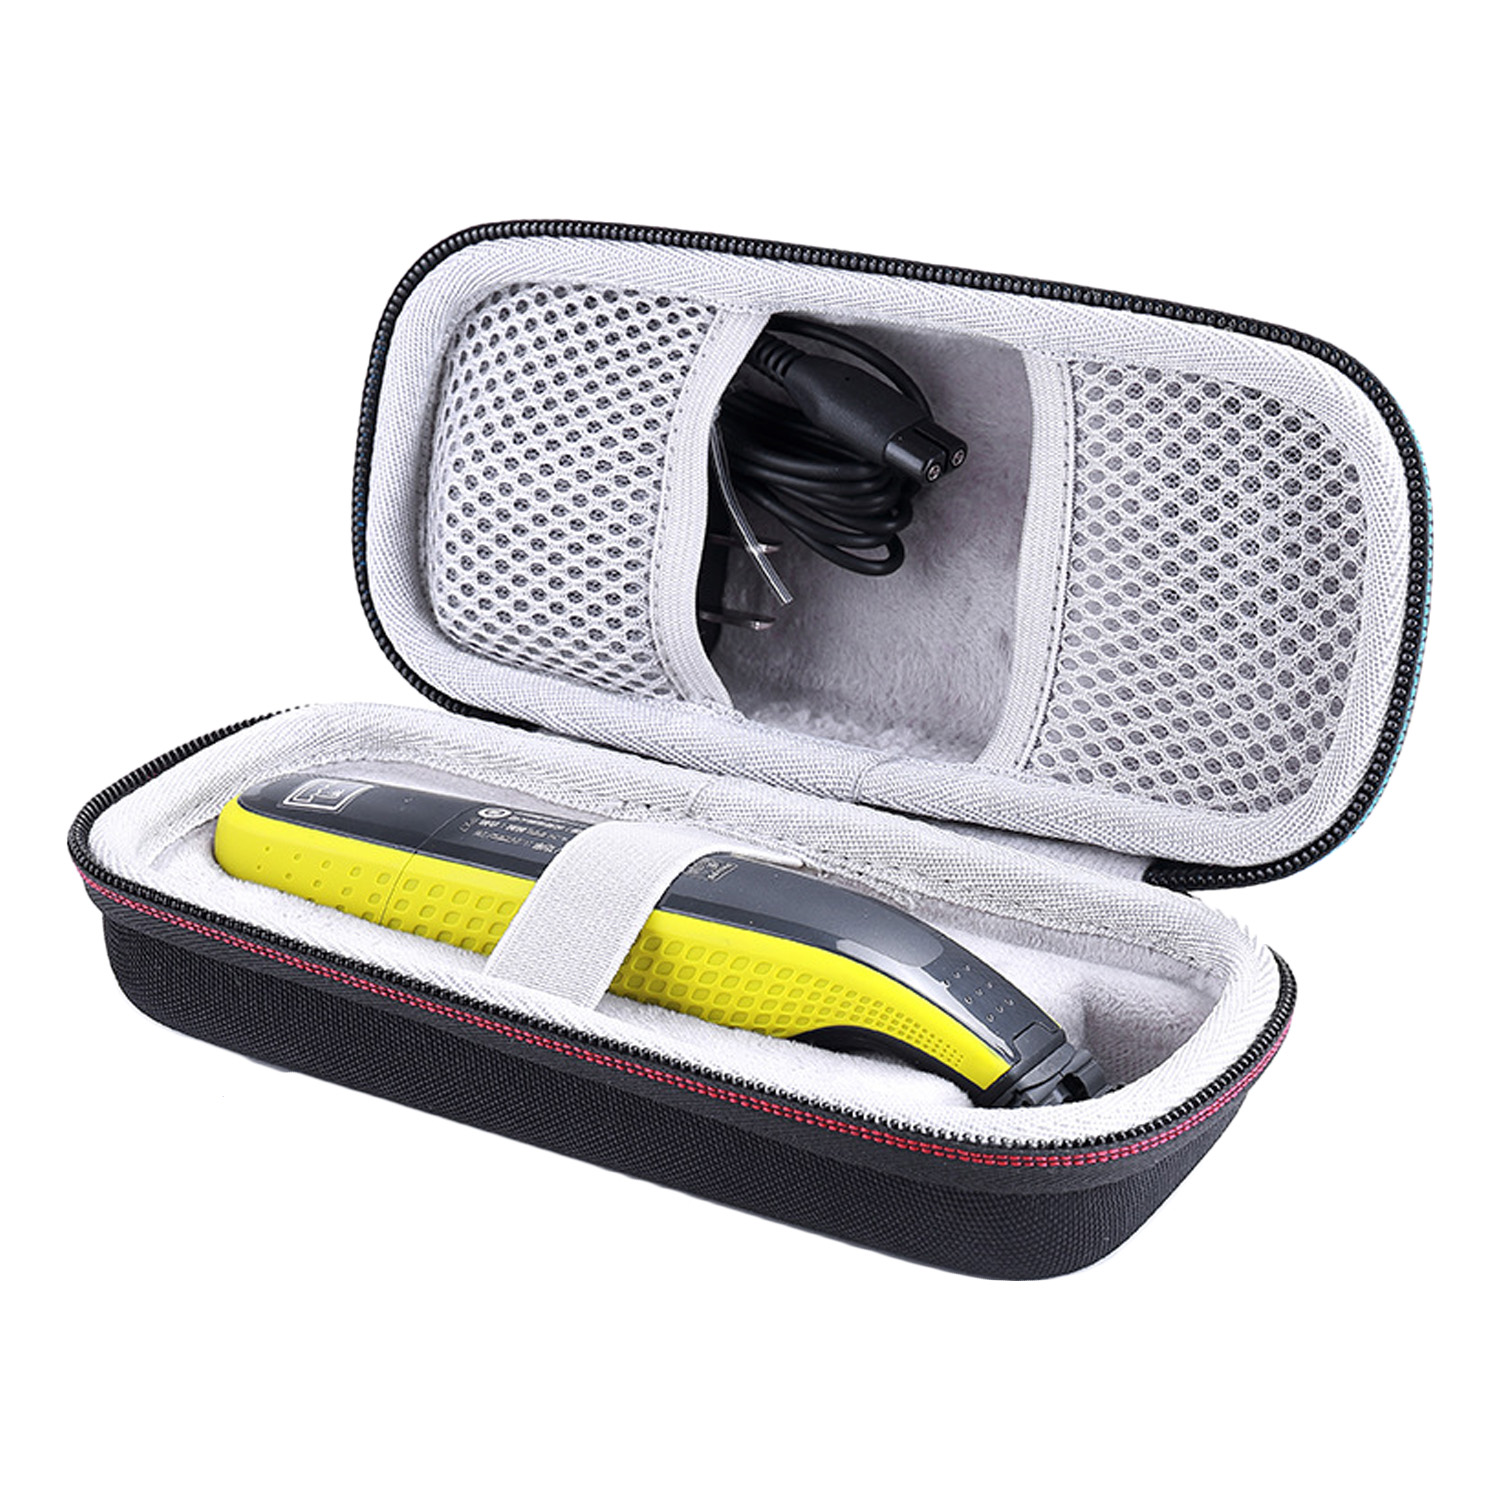 Waterproof Shockproof EVA Hard Shell Protective Storage Carrying Case Bag For Philips OneBlade QP2530 2520 Electric Shaver Razor